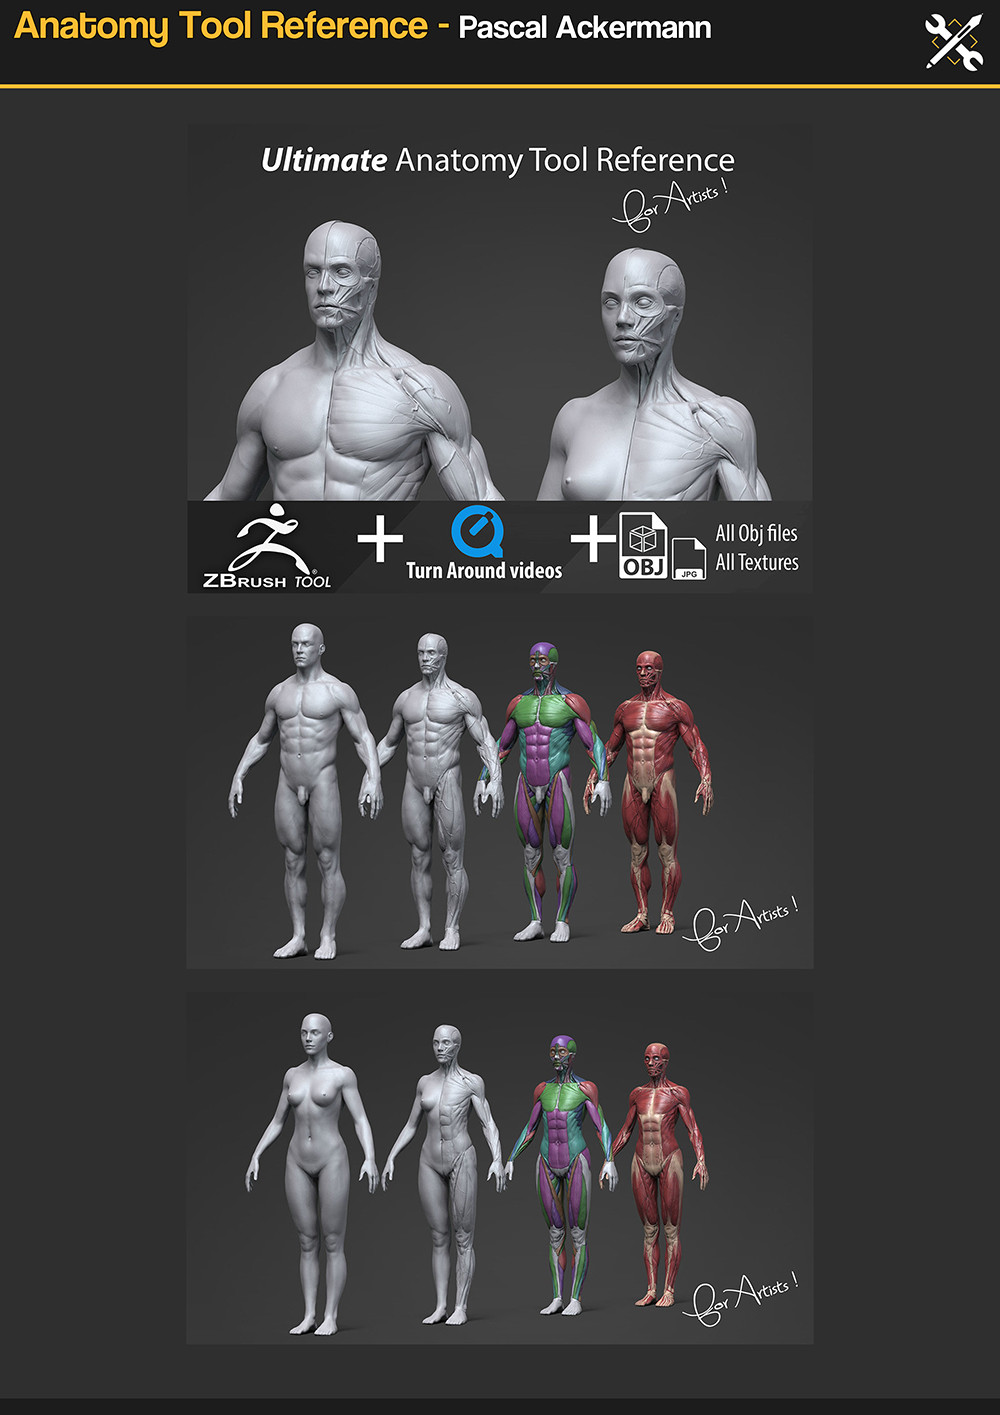 Anatomy Tool Reference - https://gumroad.com/a/224212083